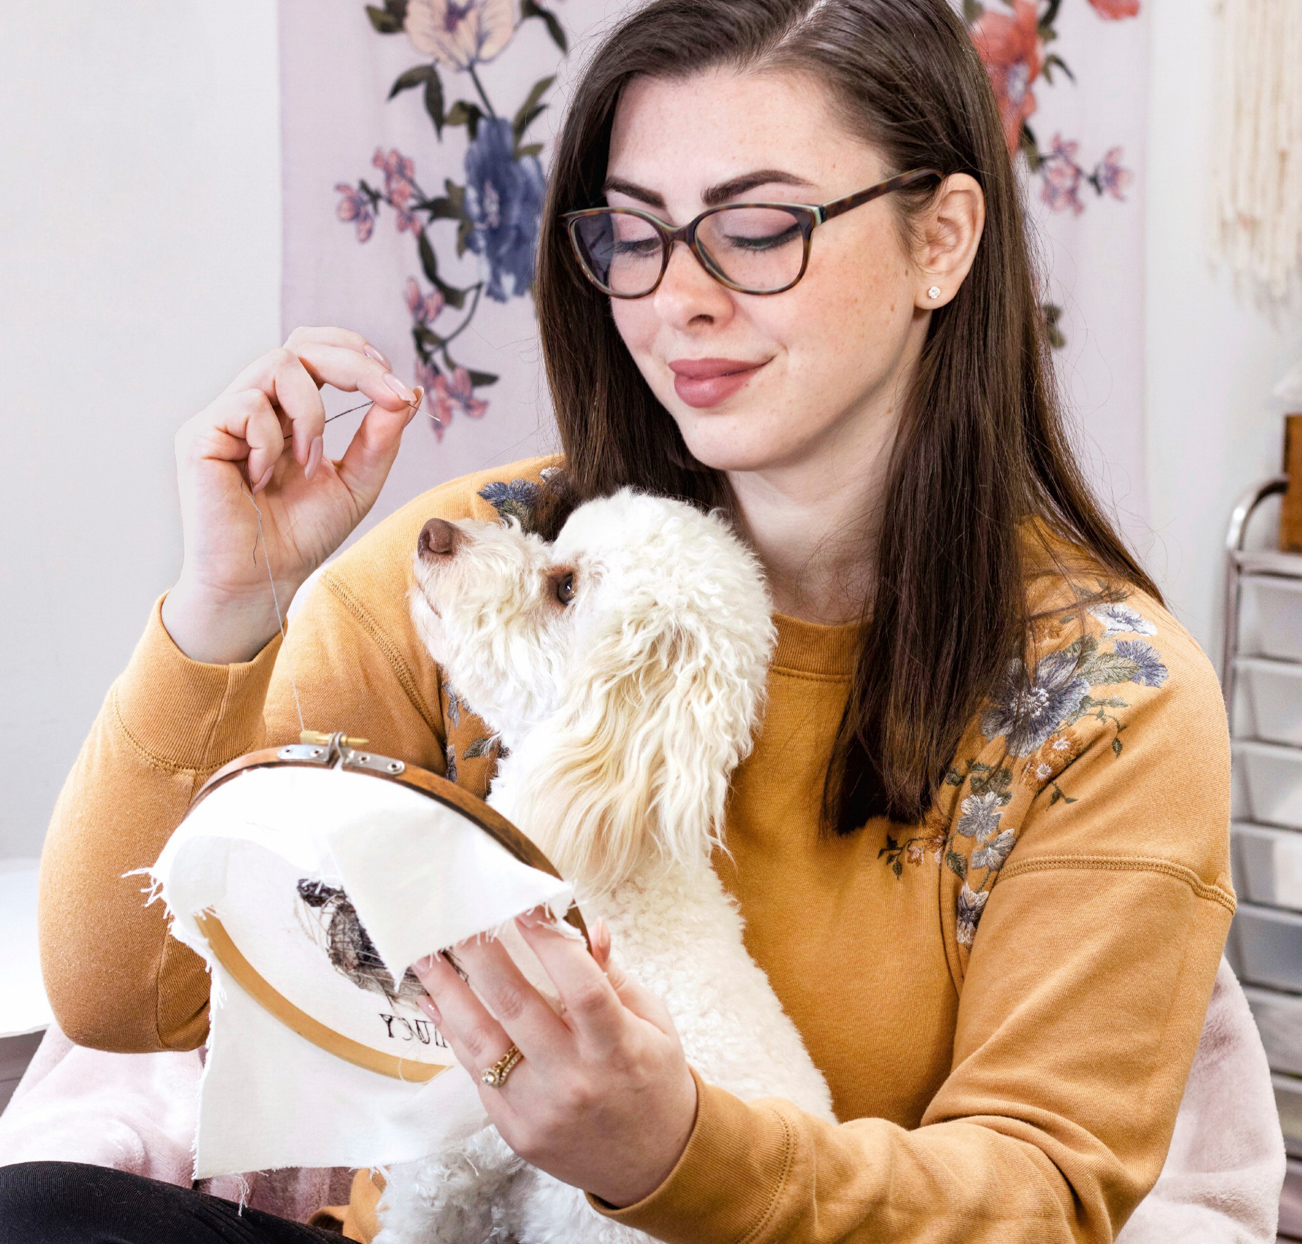 Michelle Staub doing embroidery with dog on lap